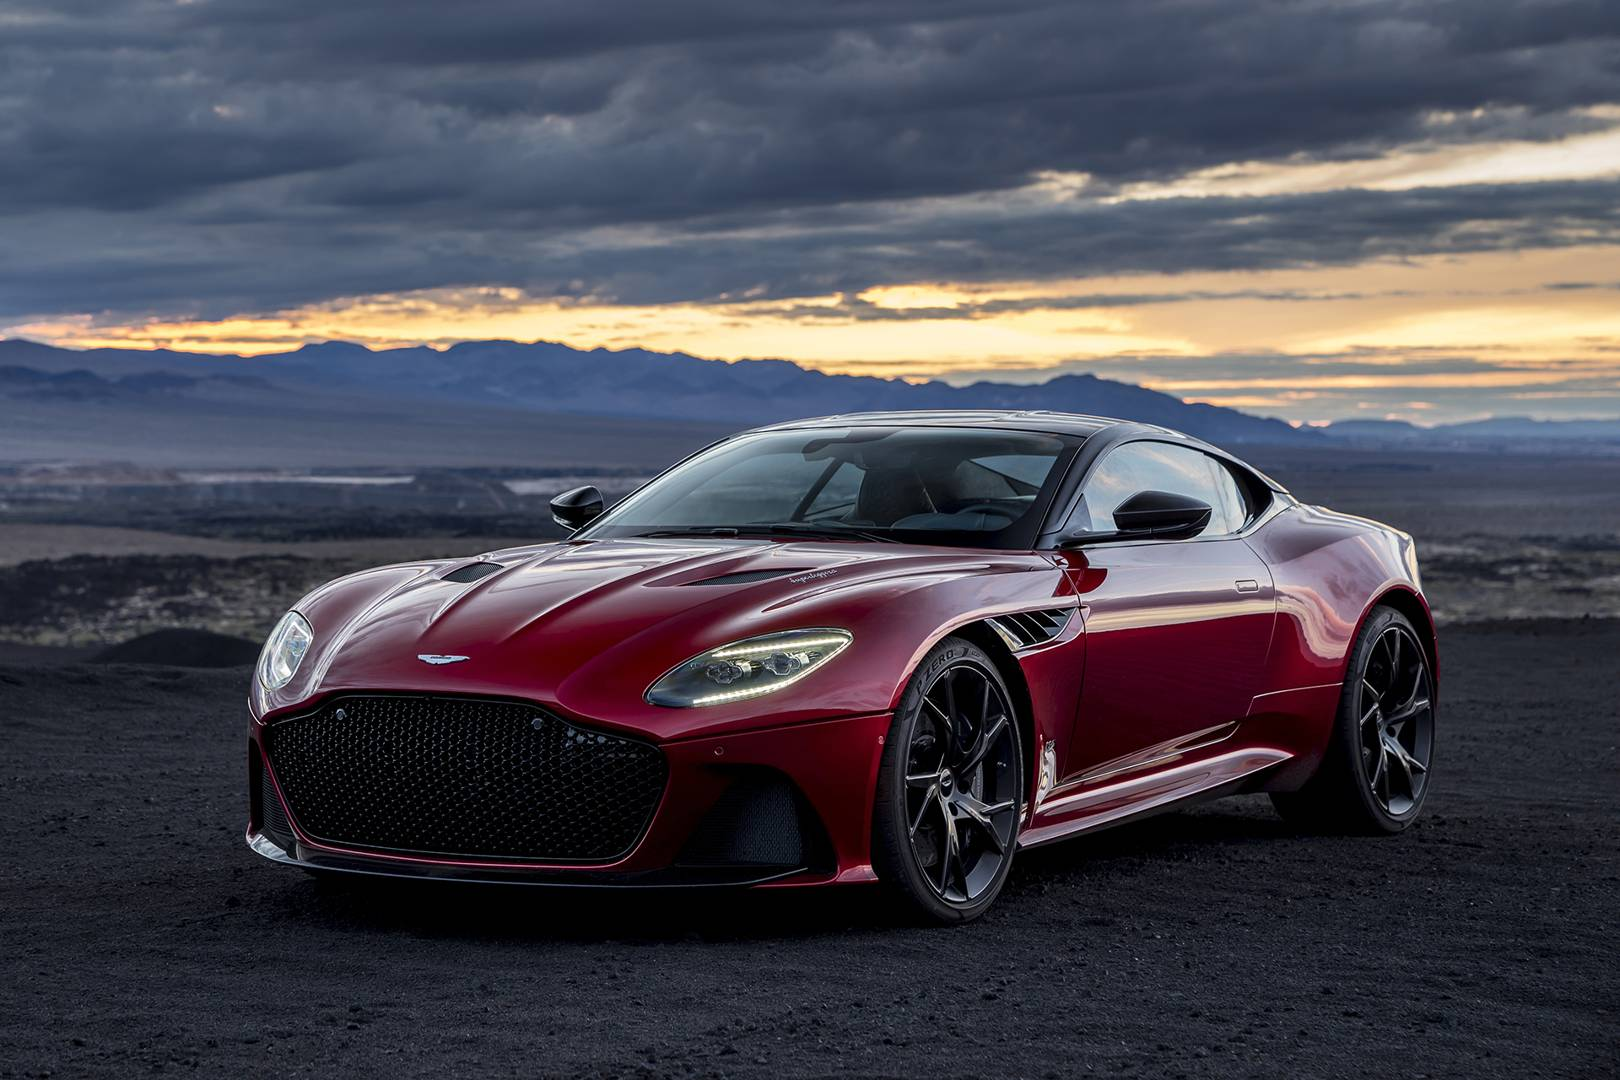 aston martin dbs superleggera review: the best car aston martin has